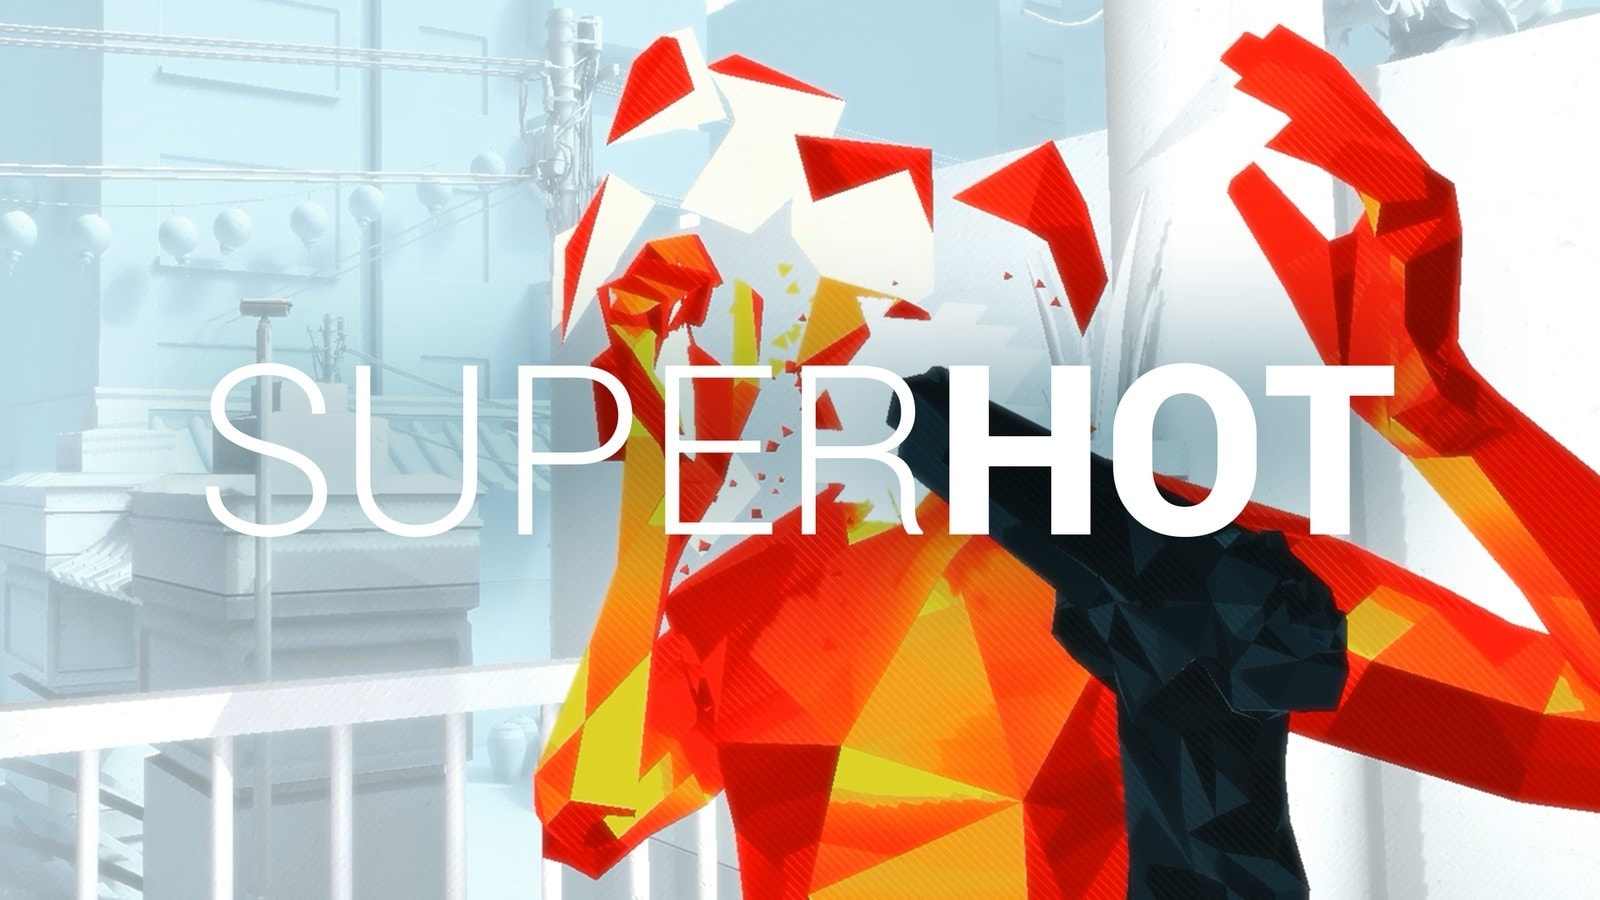 Superhot VR Video